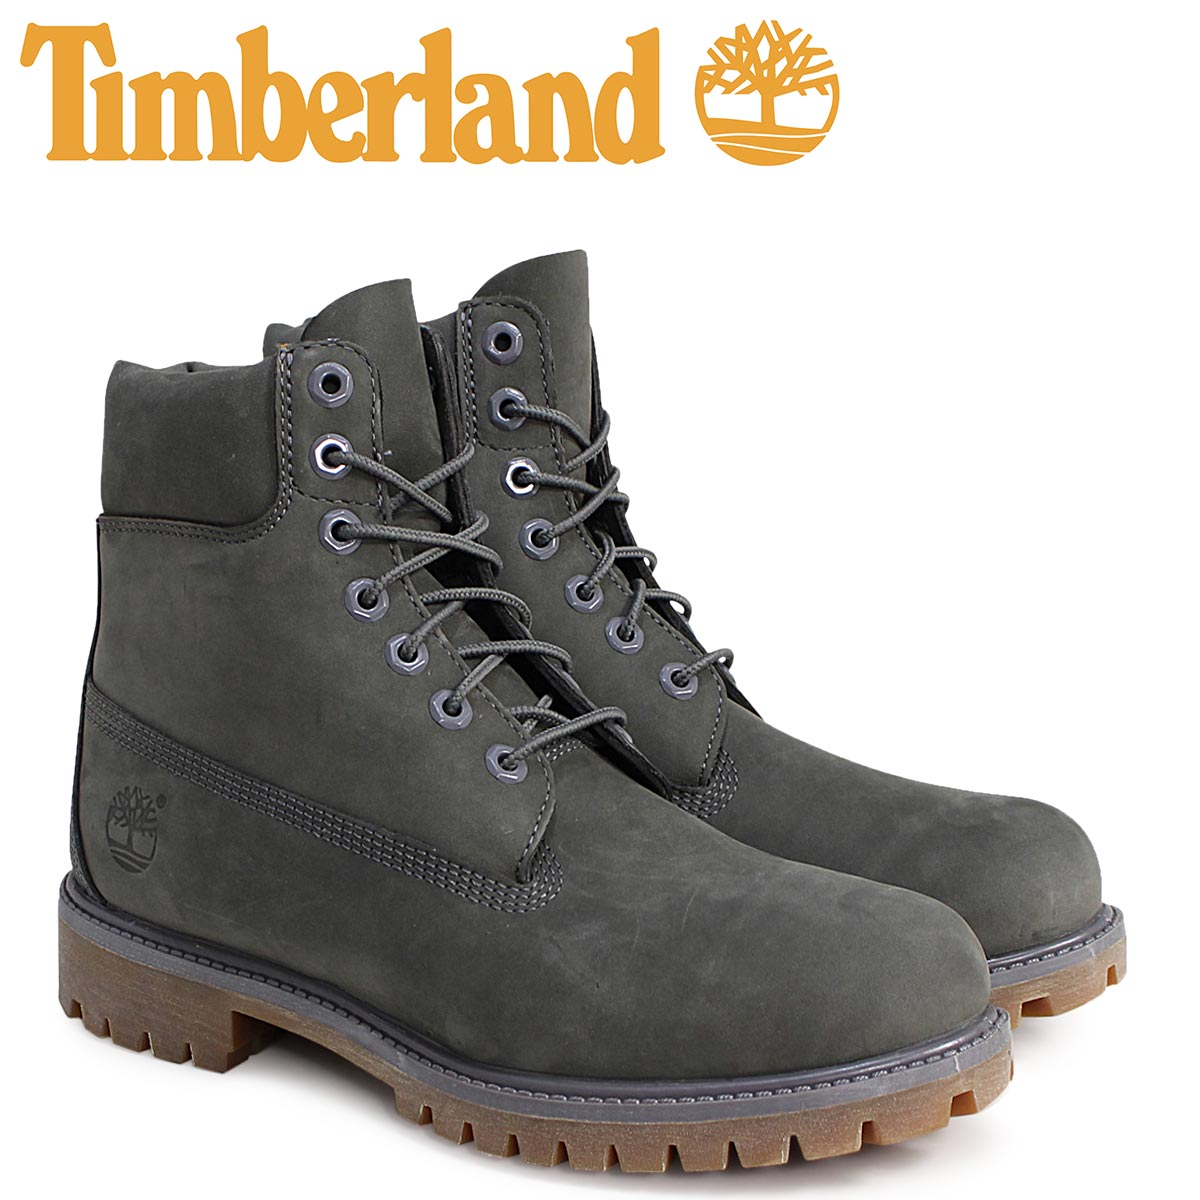 Timberland timberland 6 inches premium boots men 6INCHI 6-INCH PREMIUM  WATERPLOOF BOOTS A114K gray waterproofing  12 16 Shinnyu load  ba168fcea2